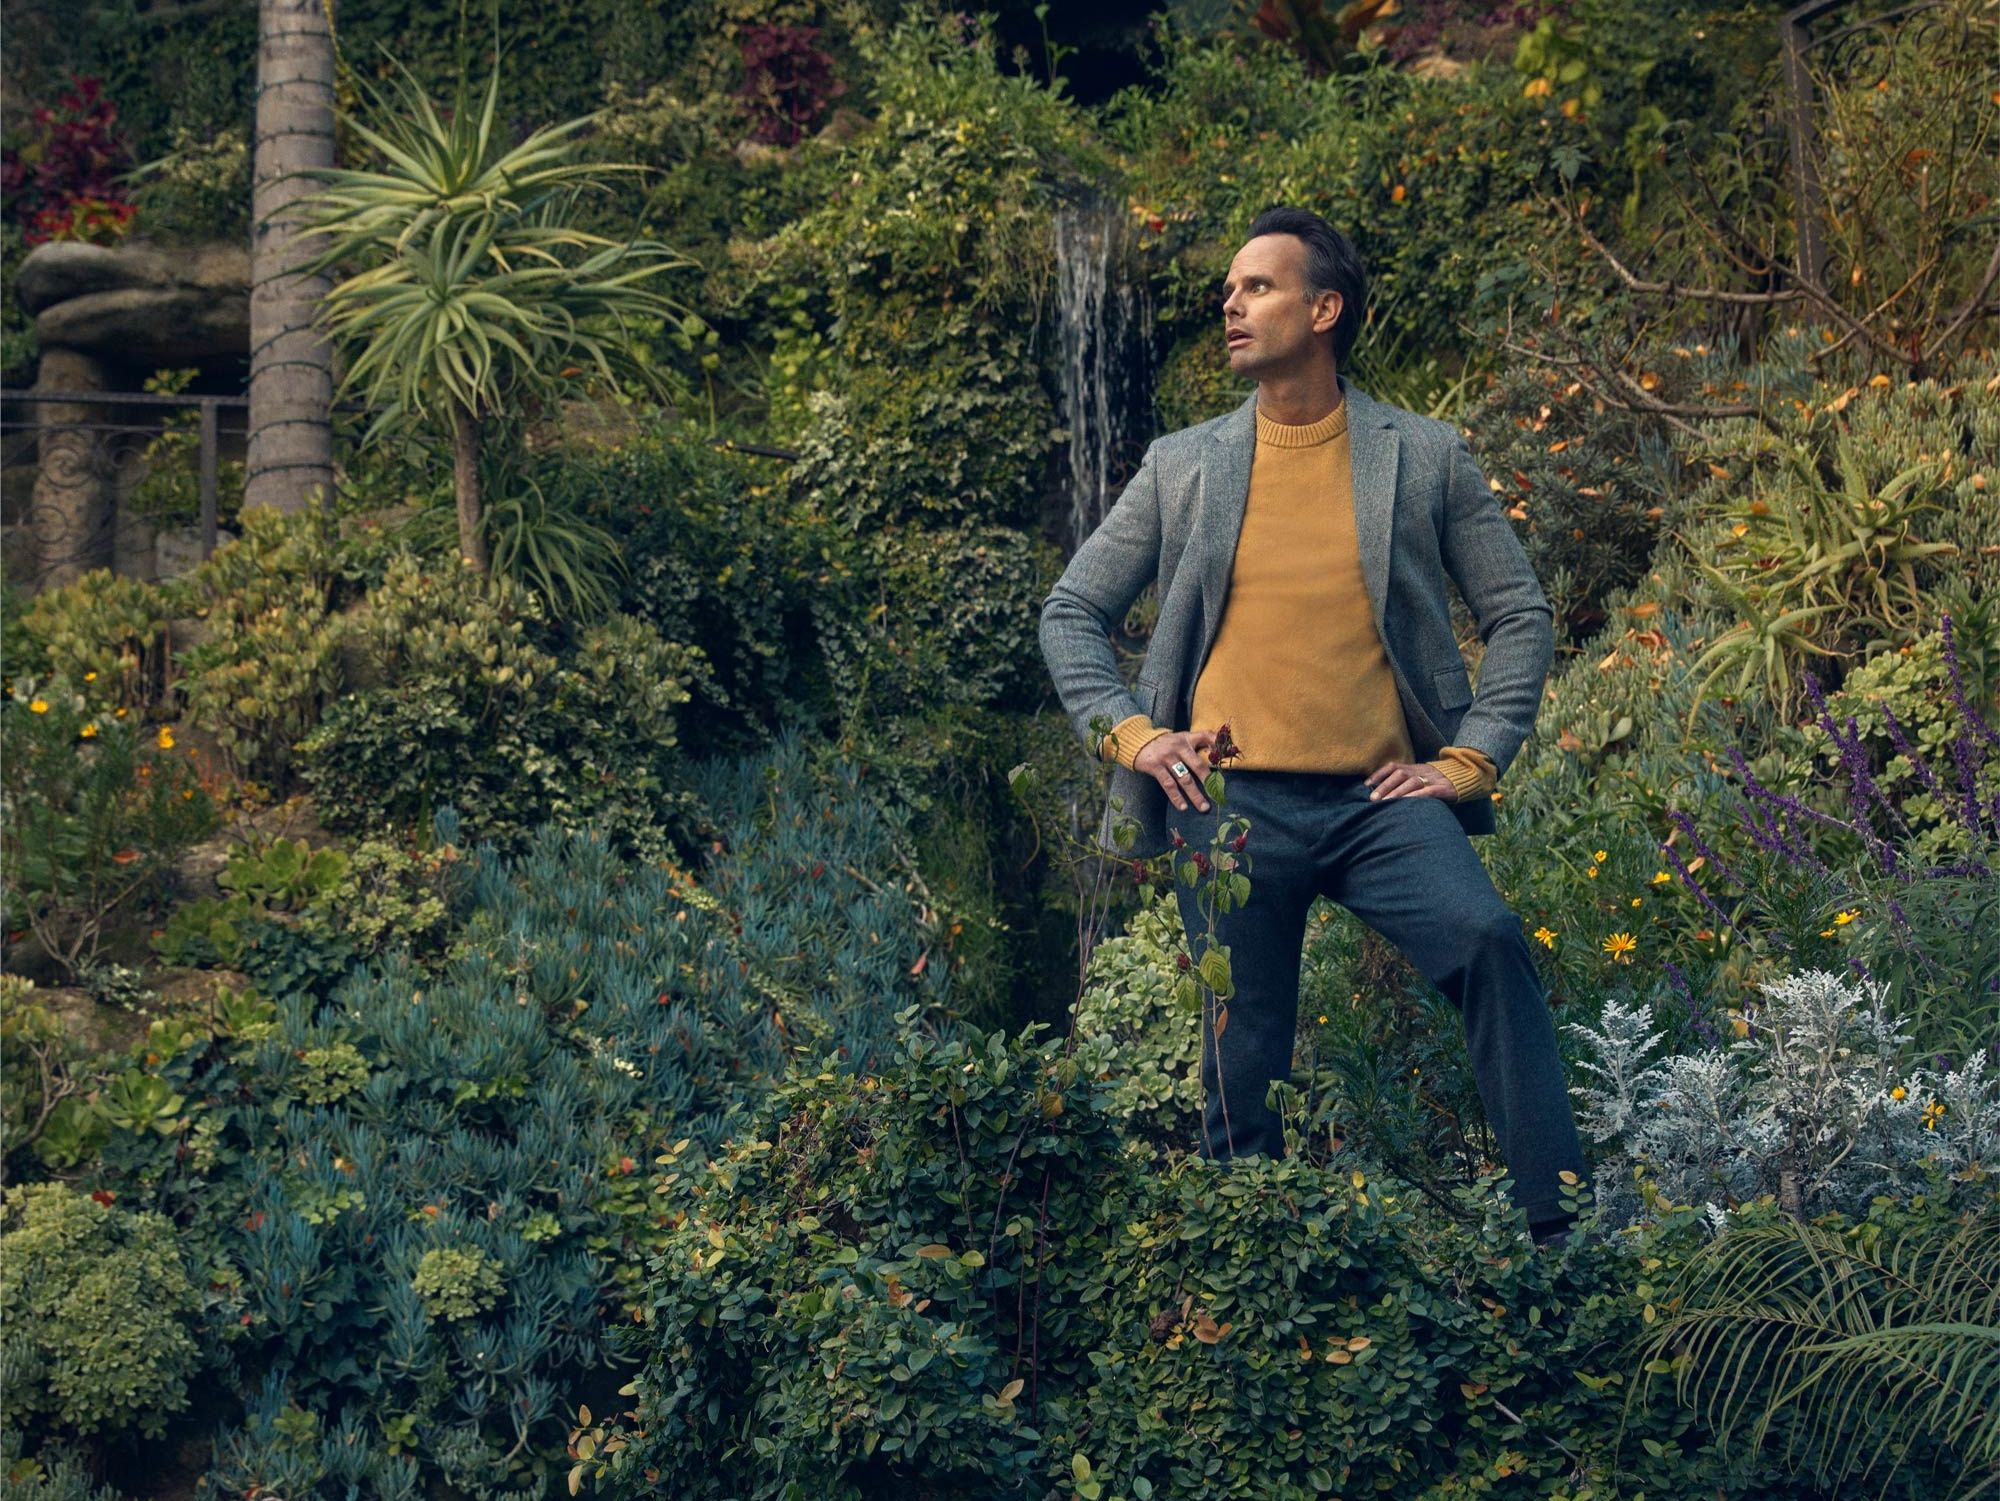 Walton Goggins standing in a beautiful landscaped garden.